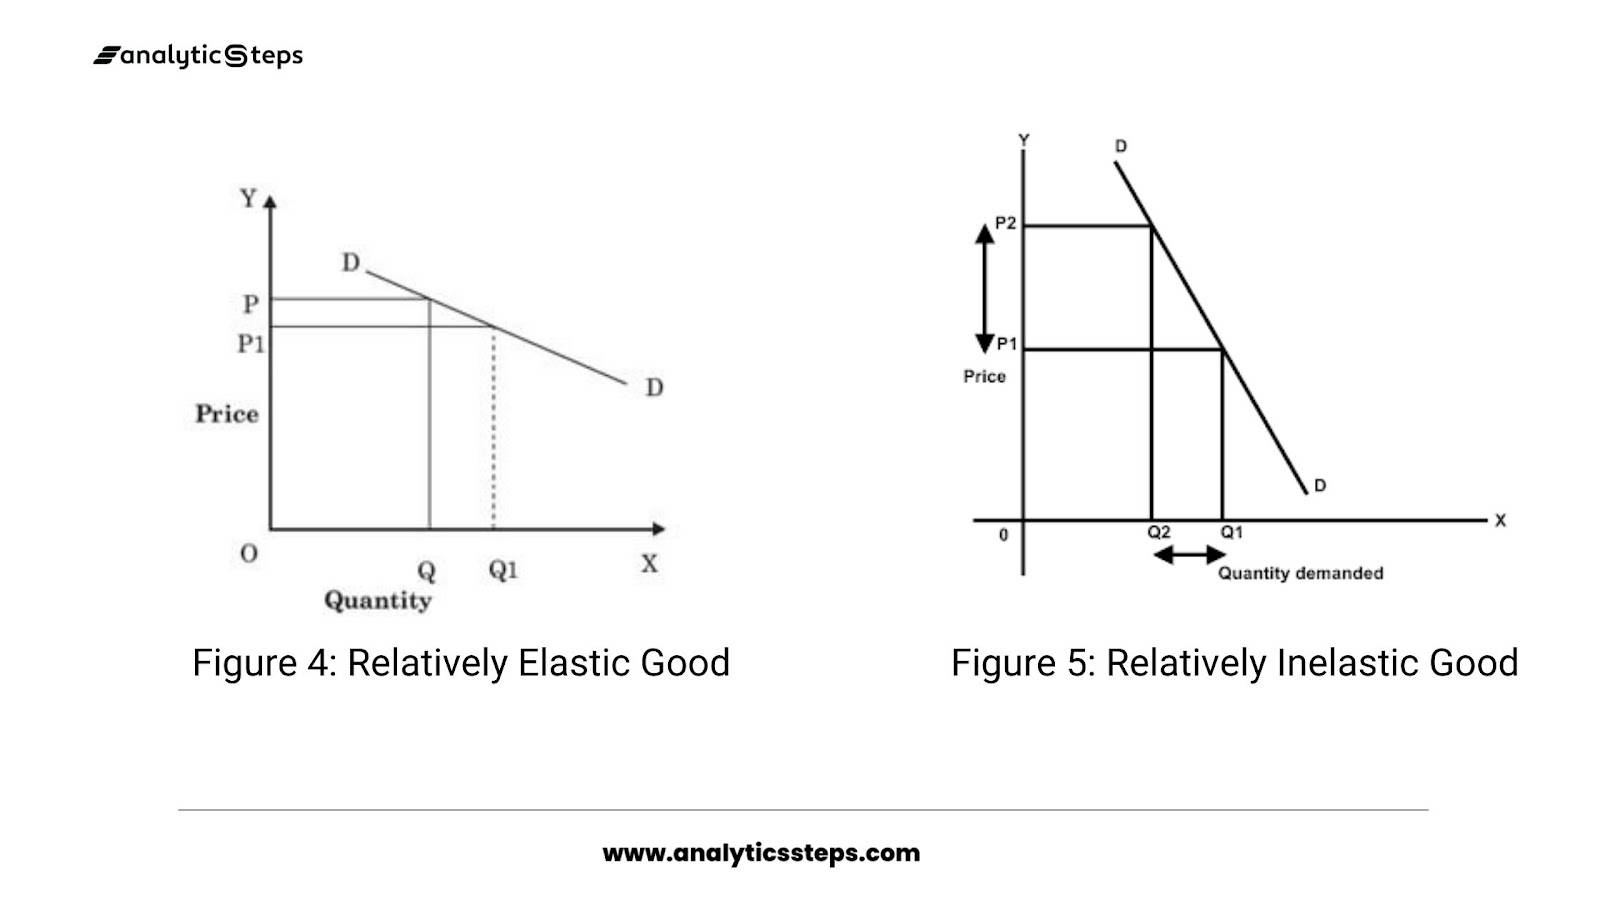 The image shows the demand curves for relatively elastic demand and relatively inelastic demand.